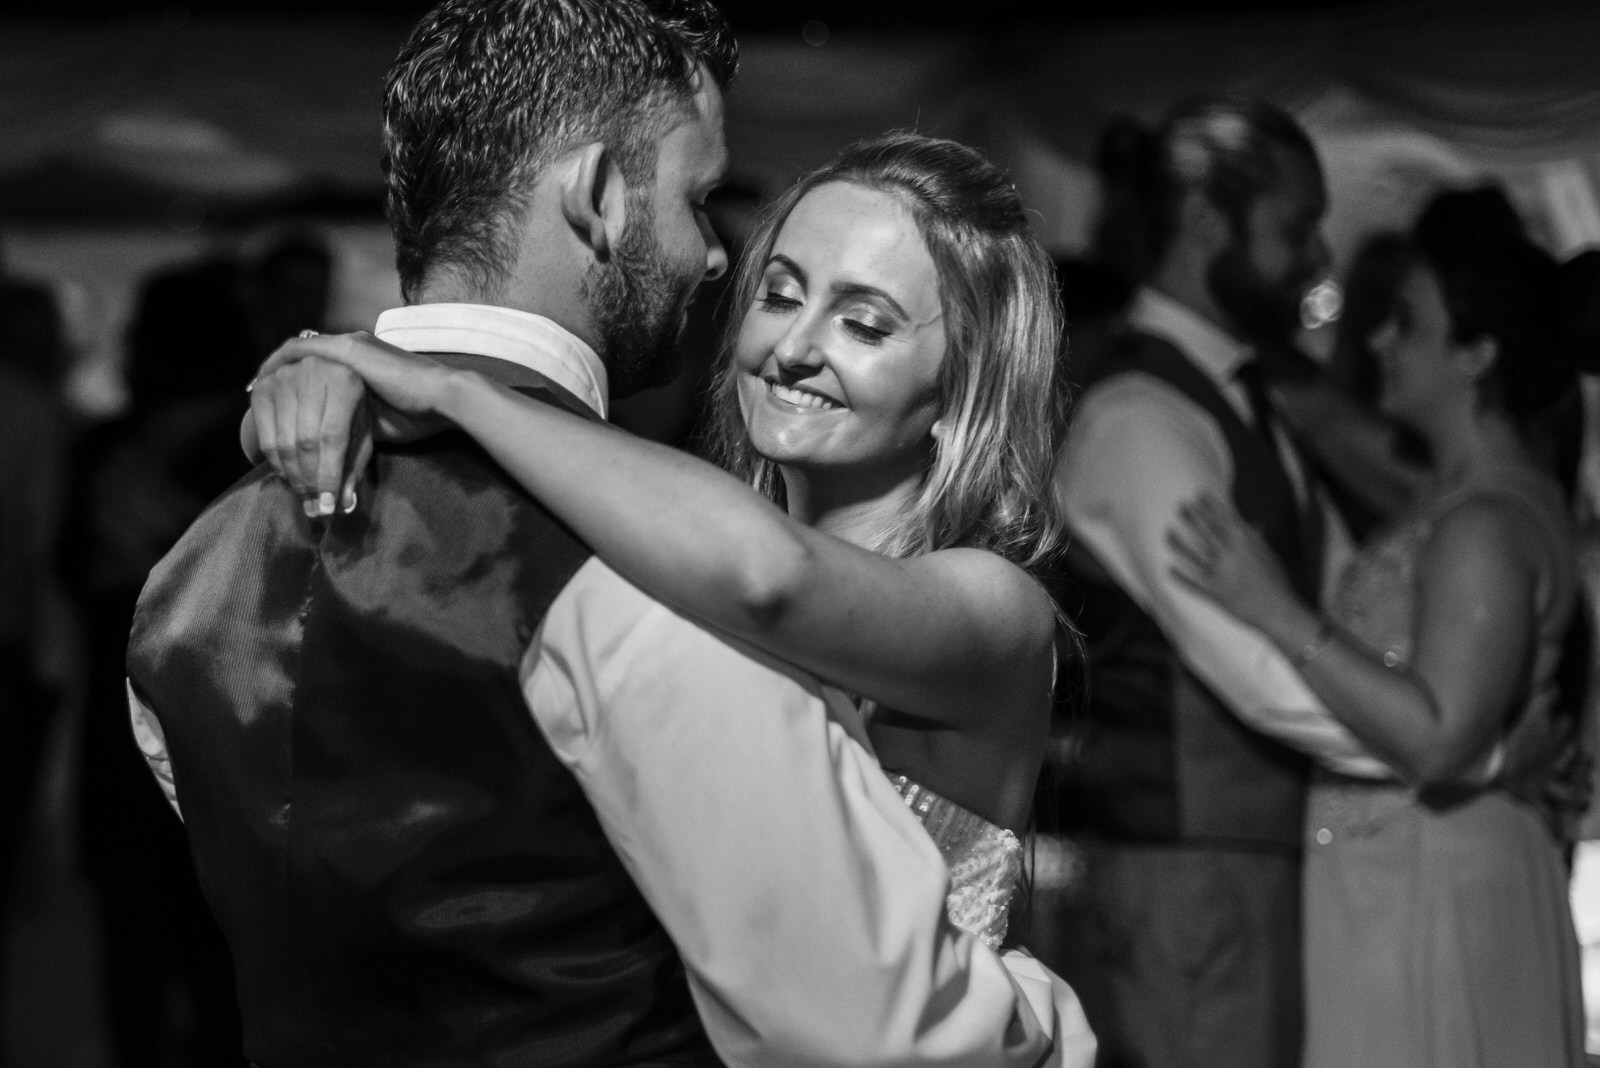 L&C-firstdance-22.jpg